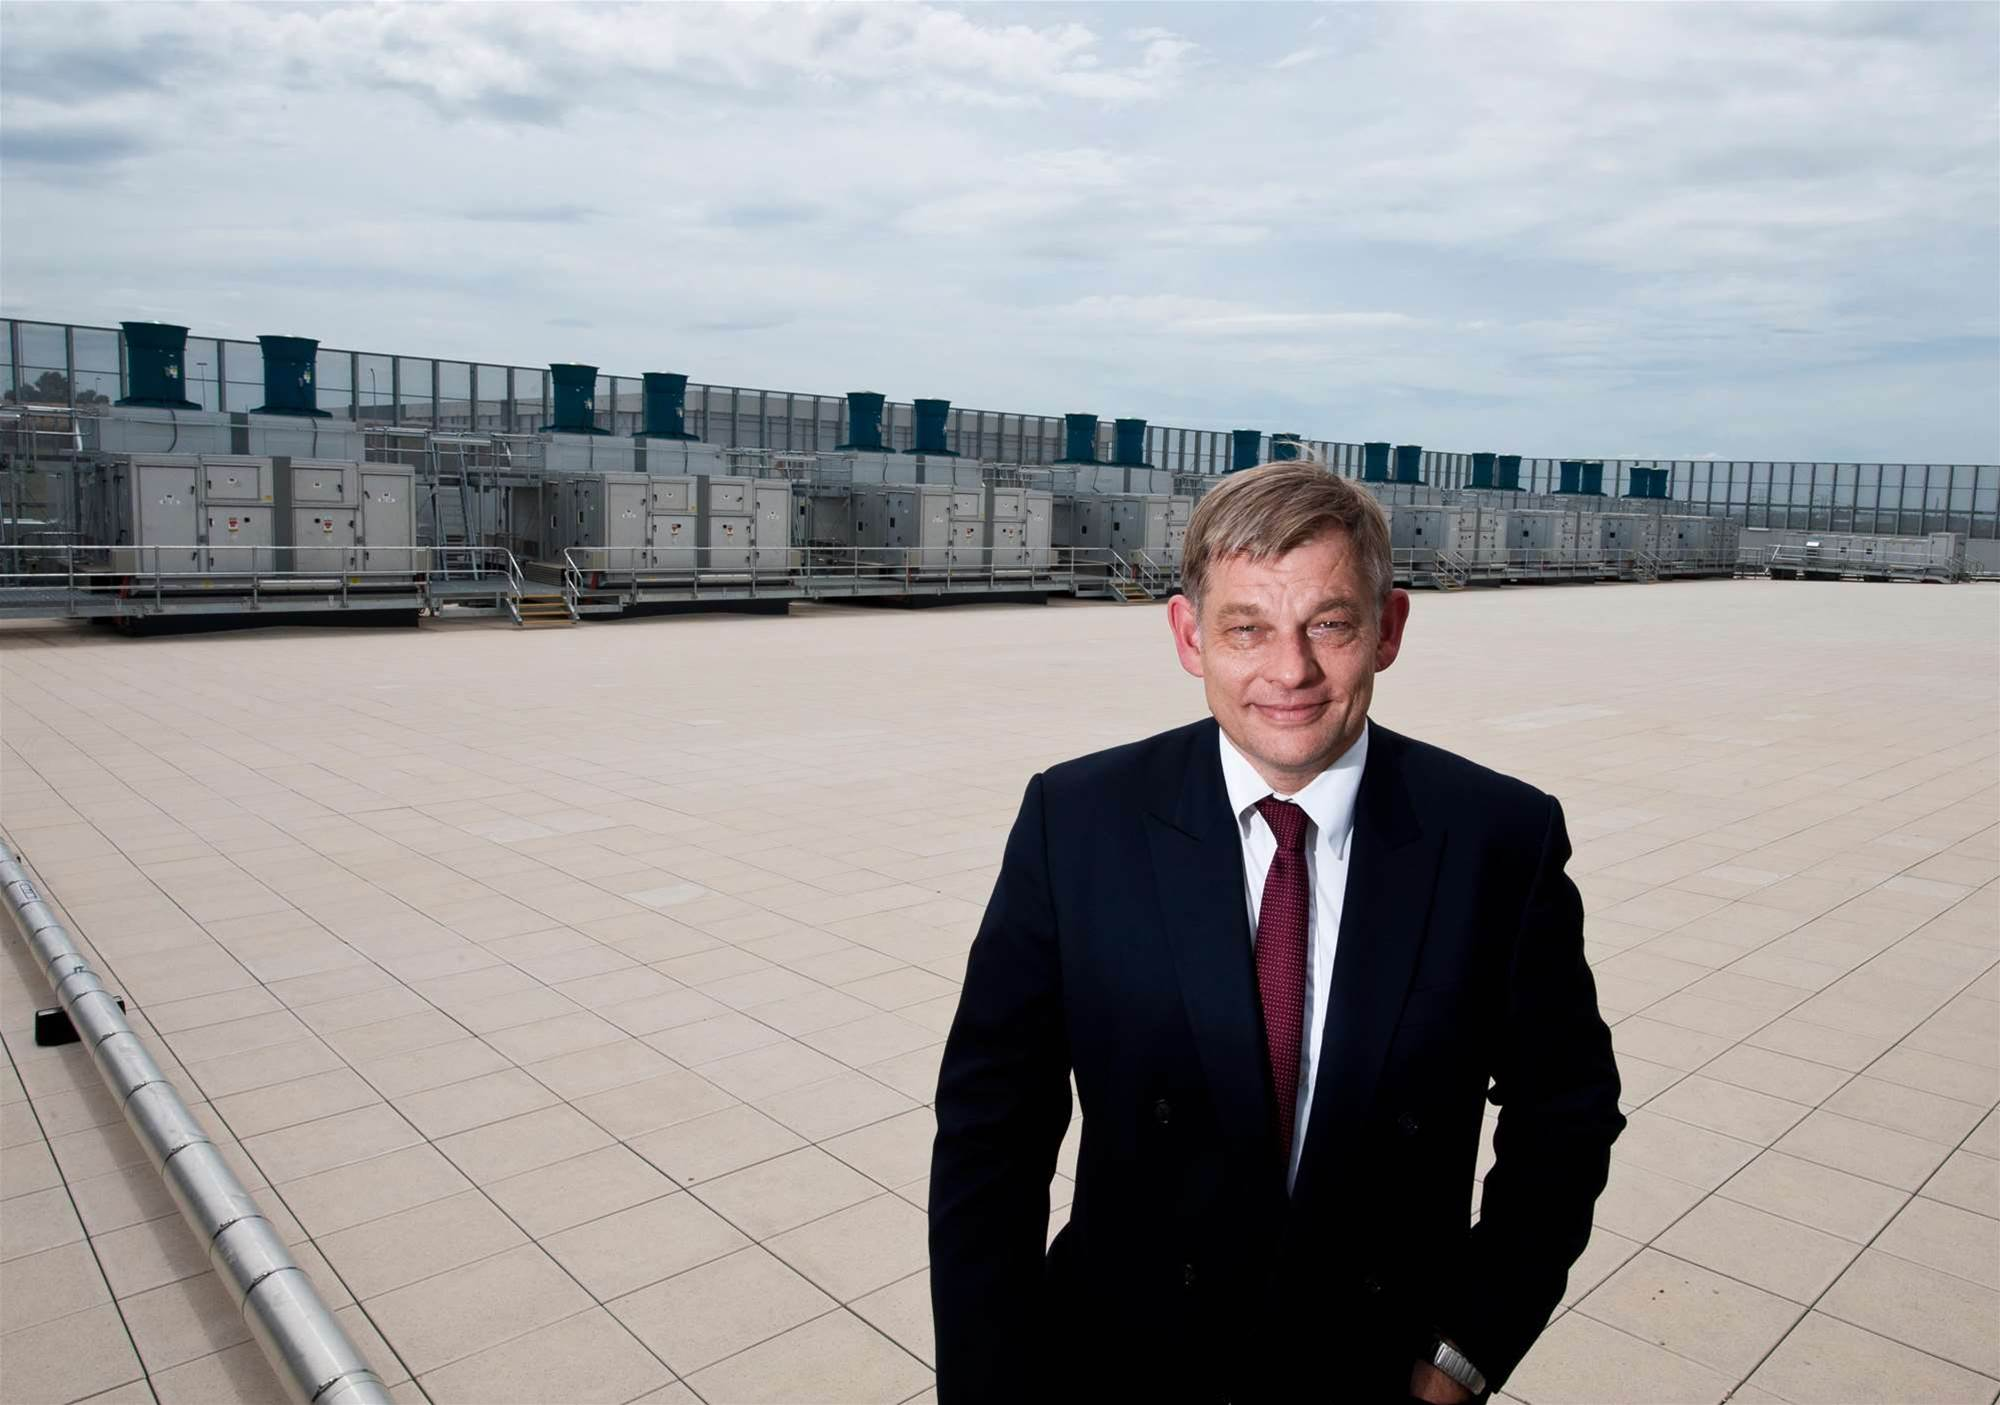 The data centre roof hosts the facility's five generators, air conditioning units and air scrubbers, which are used to clean the ambient air for entry. Pictured: General manager of HP Enterprise Services, Alan Bennett.